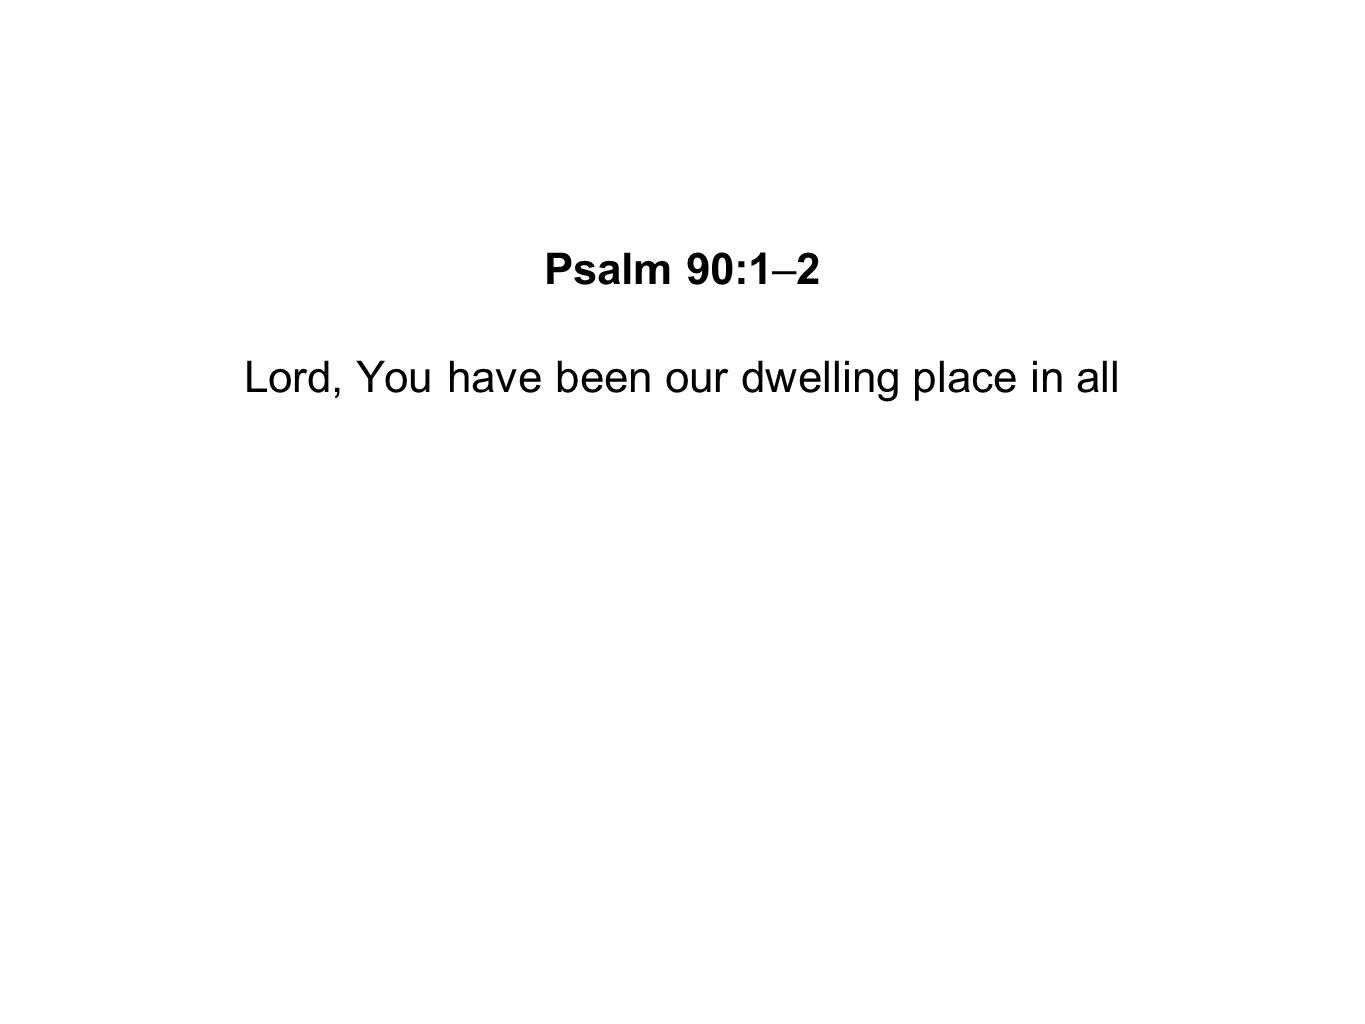 Lord, You have been our dwelling place in all